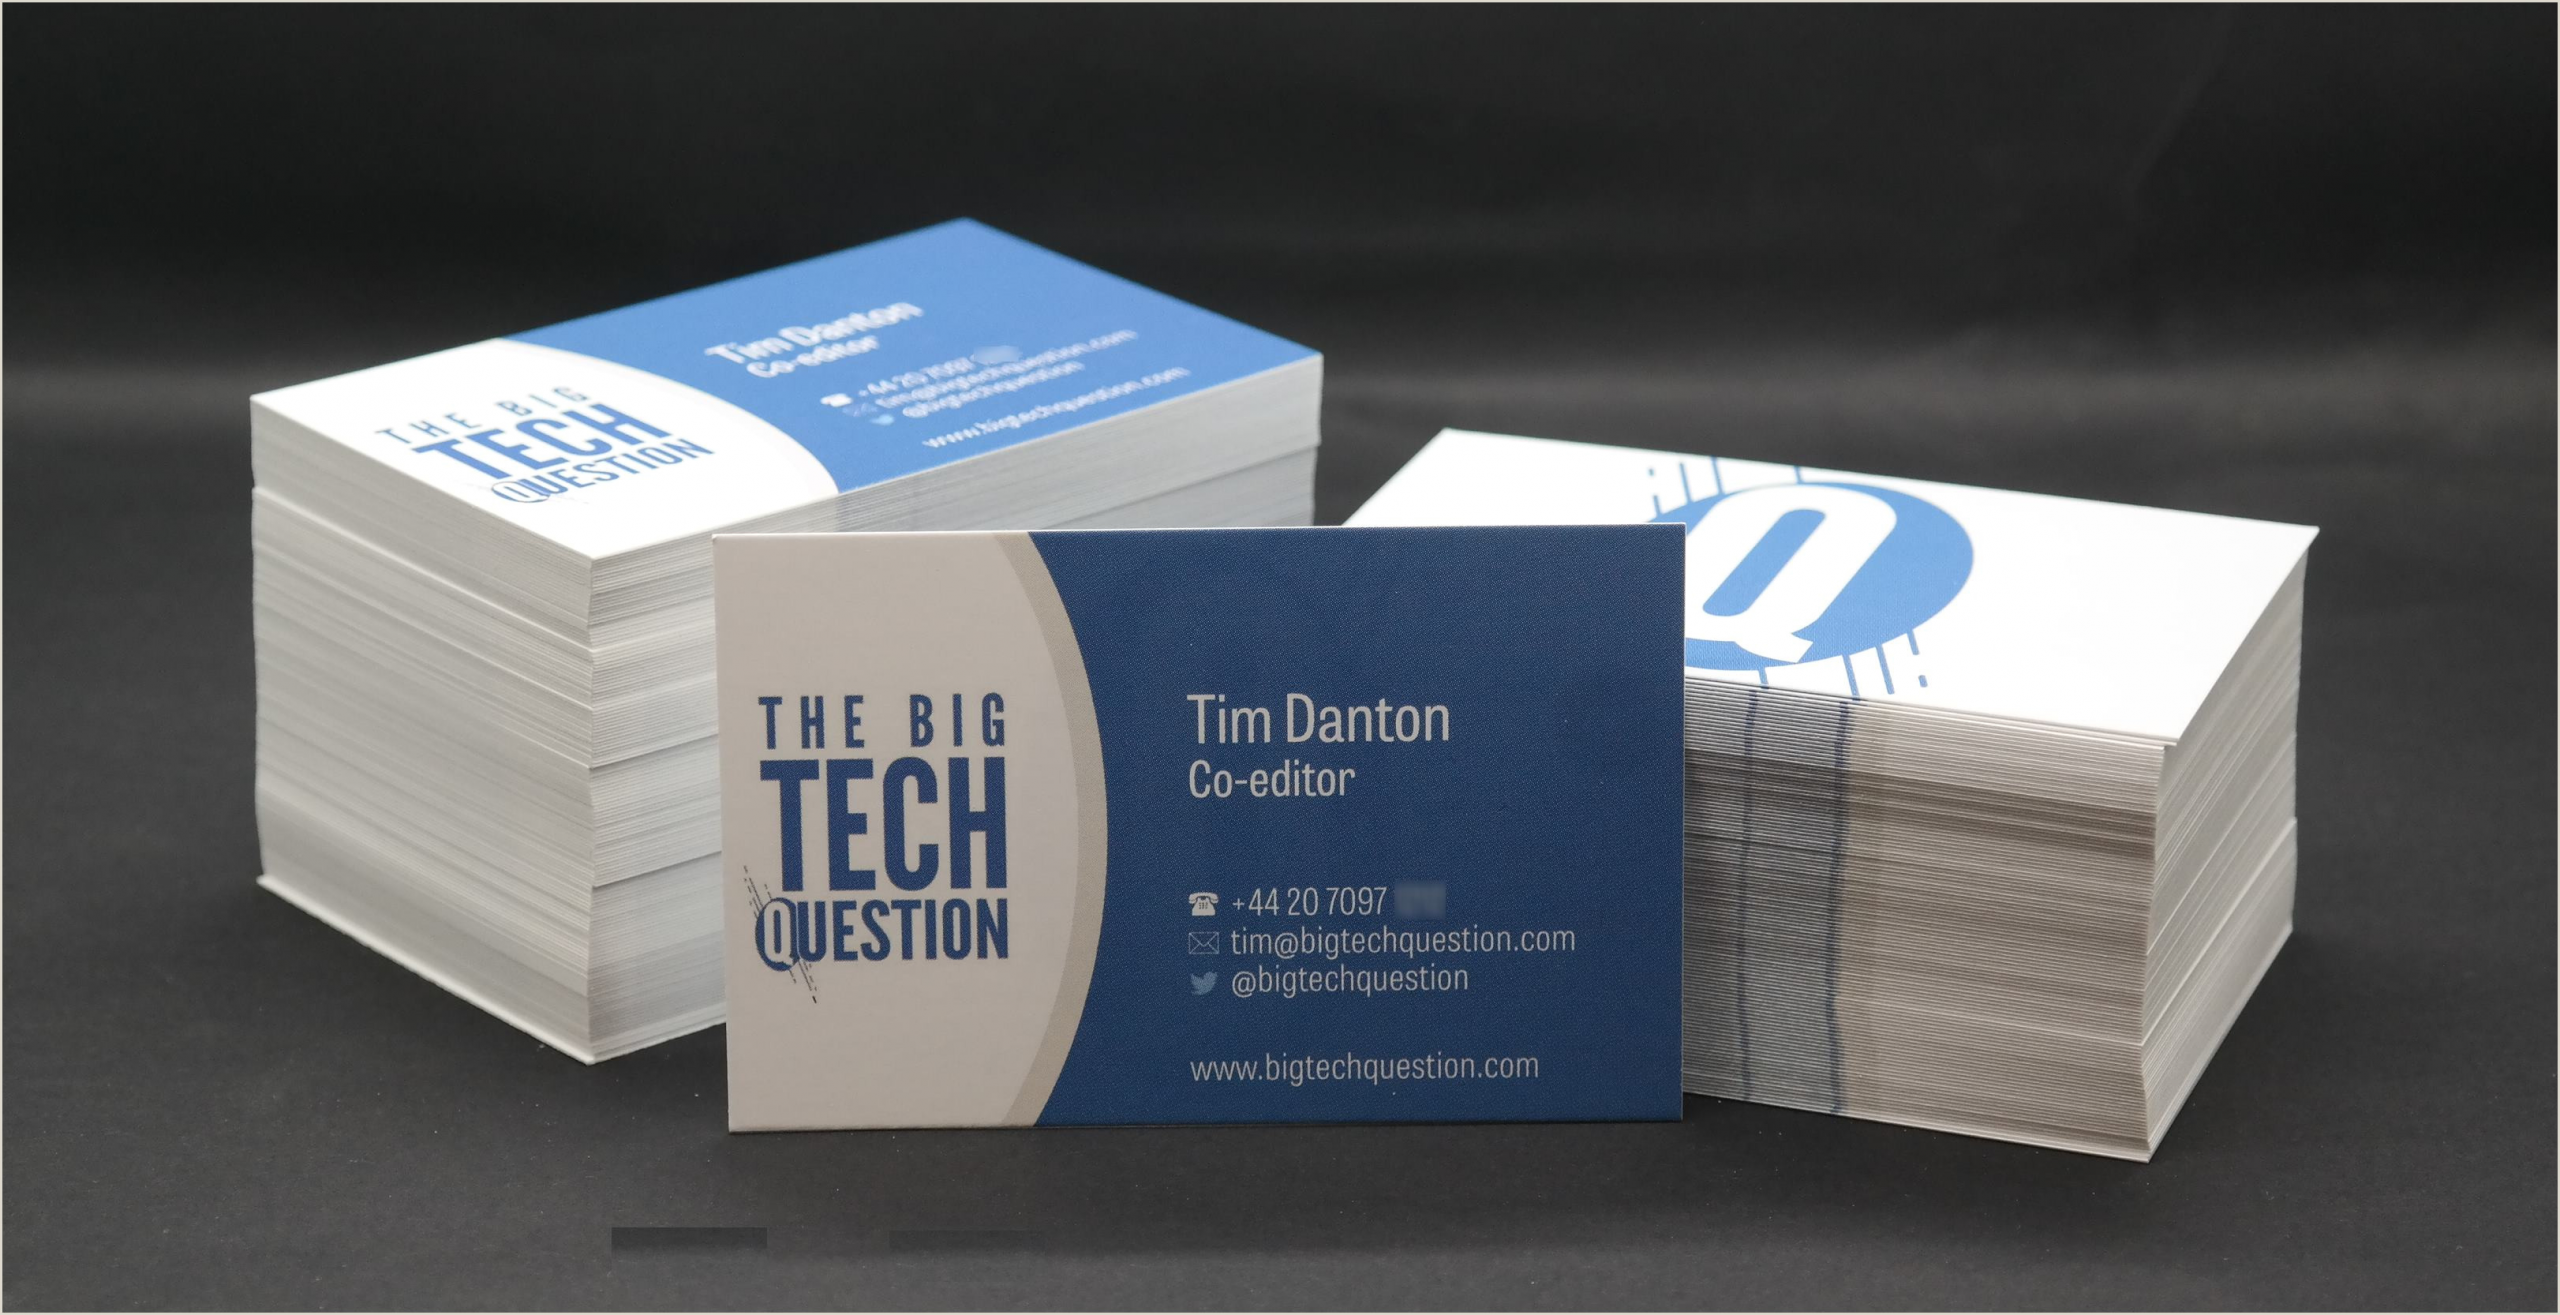 Does Vistaprint Have The Best Business Cards Vistaprint Business Cards Review Are They As Polished As